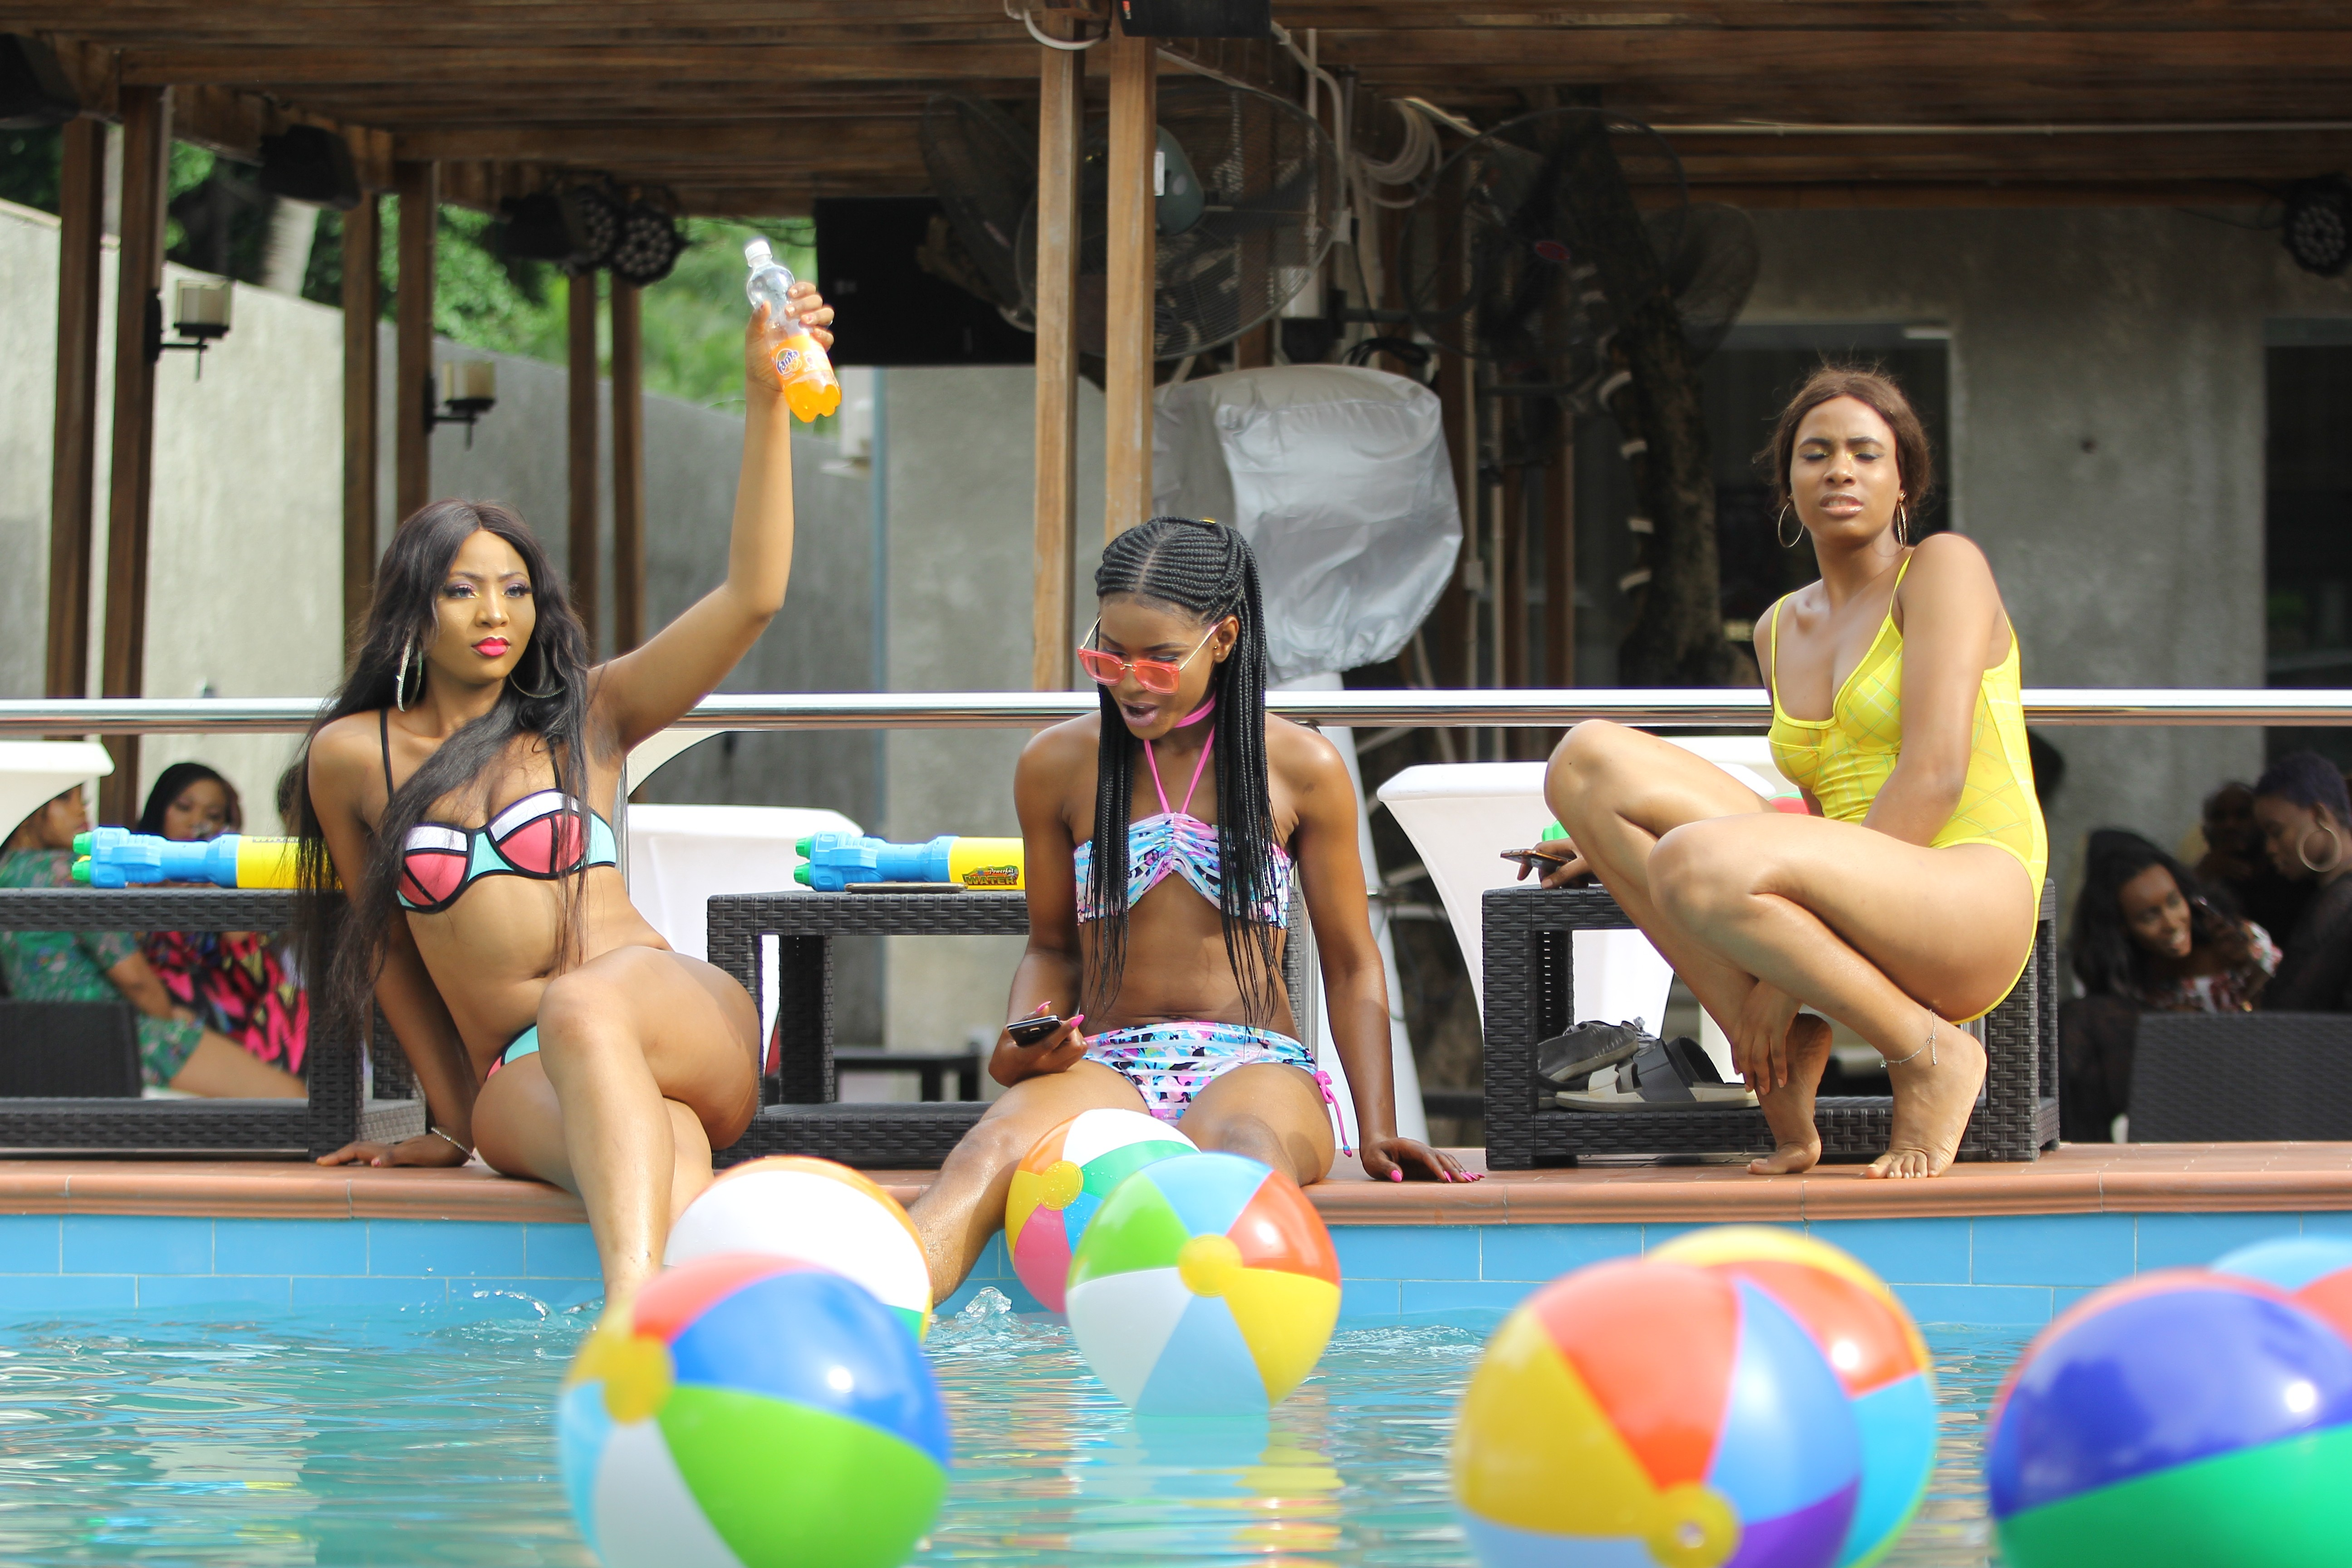 Rendezvous at noon 3: The littest party of the summer is back